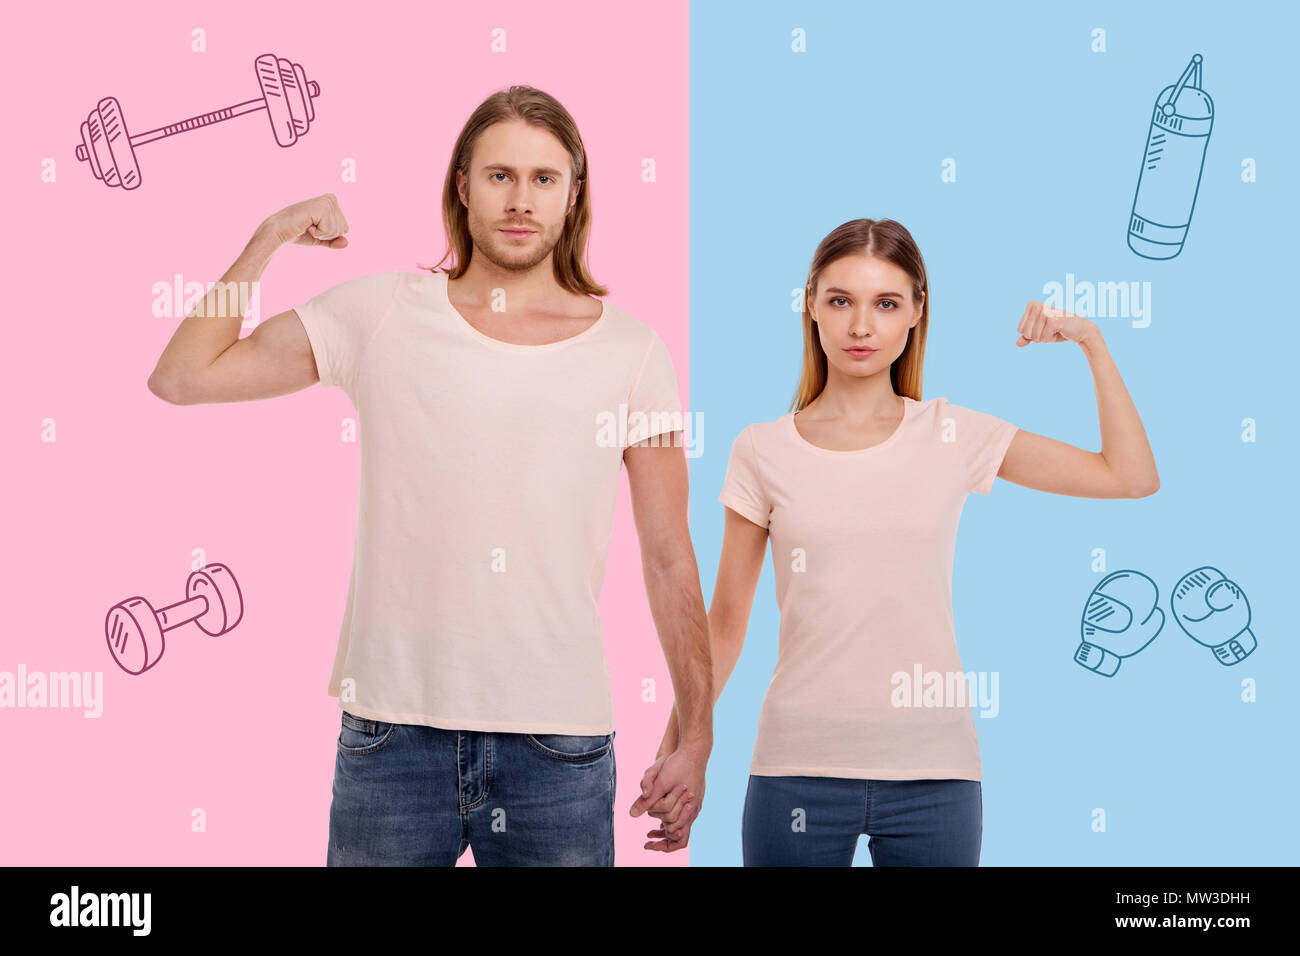 Ambitious couple of sportsmen showing their muscles and feeling confident - Stock Image